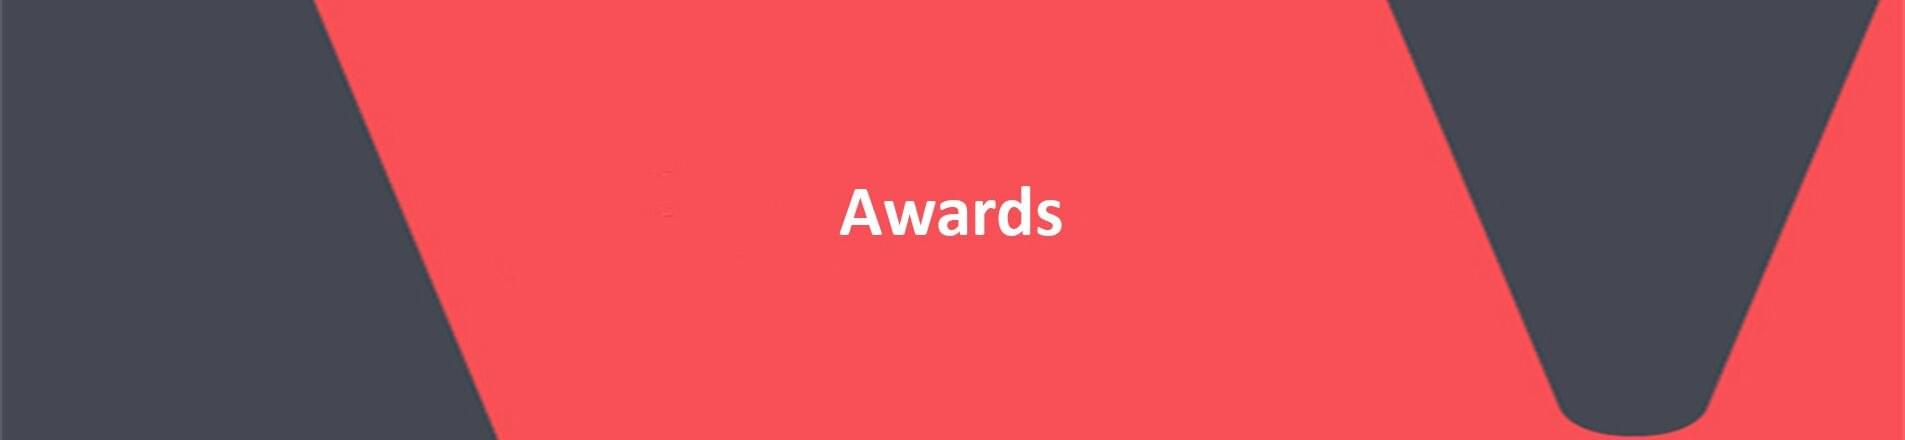 The word 'Awards' on red VERCIDA background